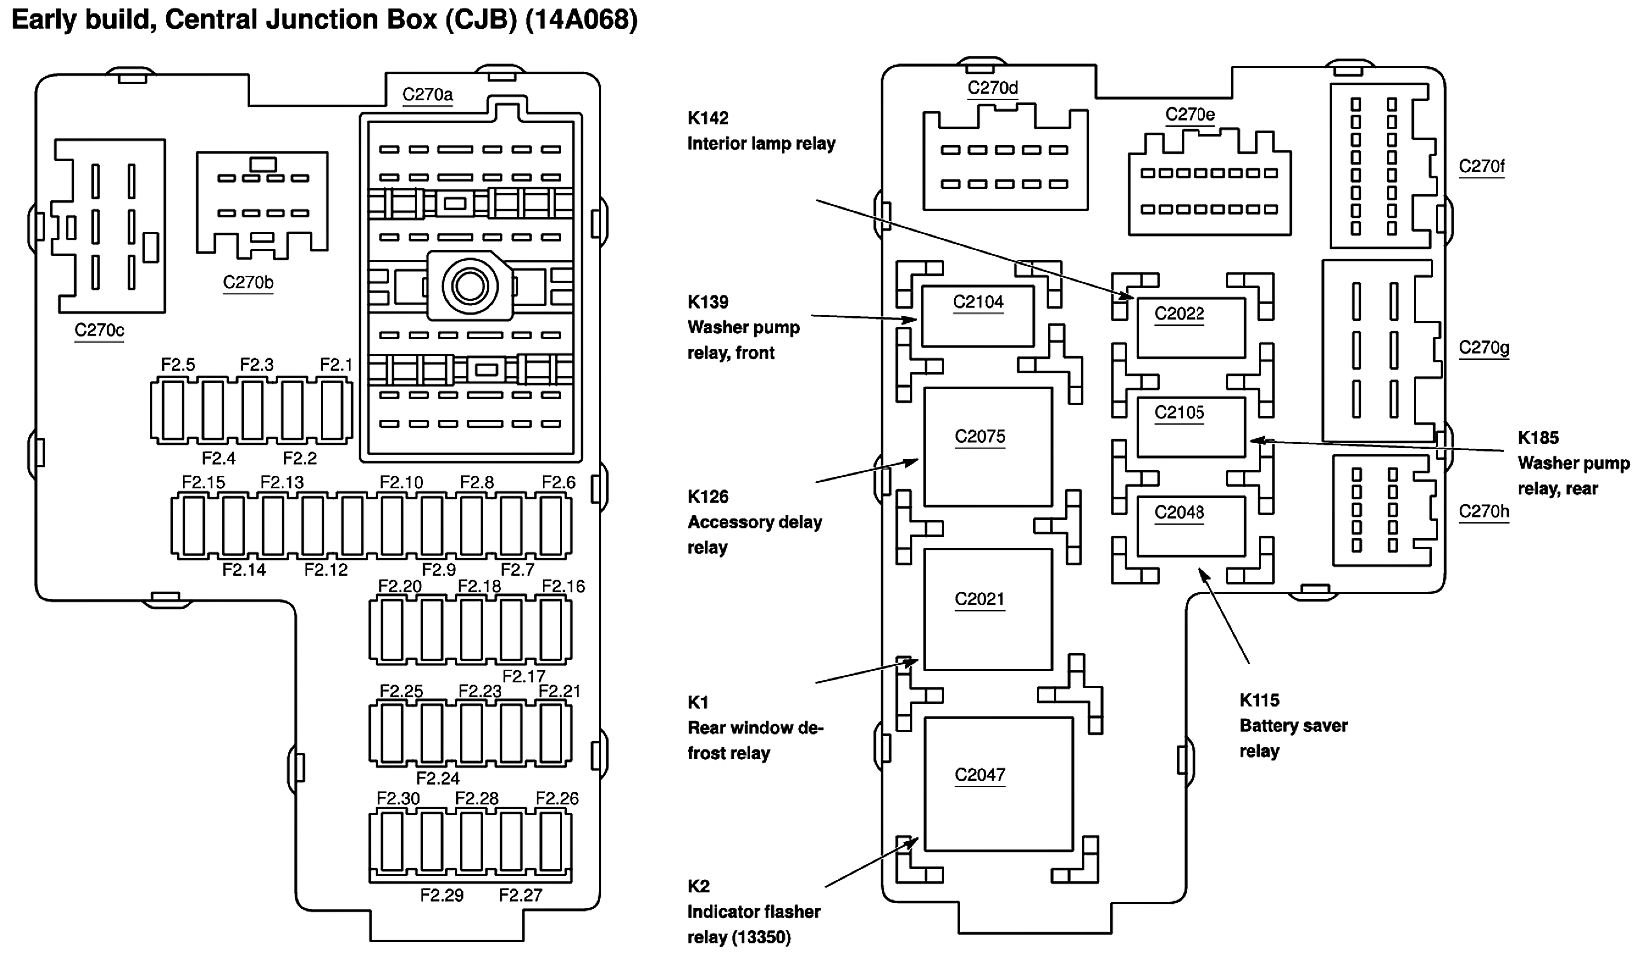 2003 Ford Explorer Fuse Box Location Wiring Diagrams \u2022 Fuse Box For  2000 Ford Windstar Fuse Box For 2003 Ford Explorer